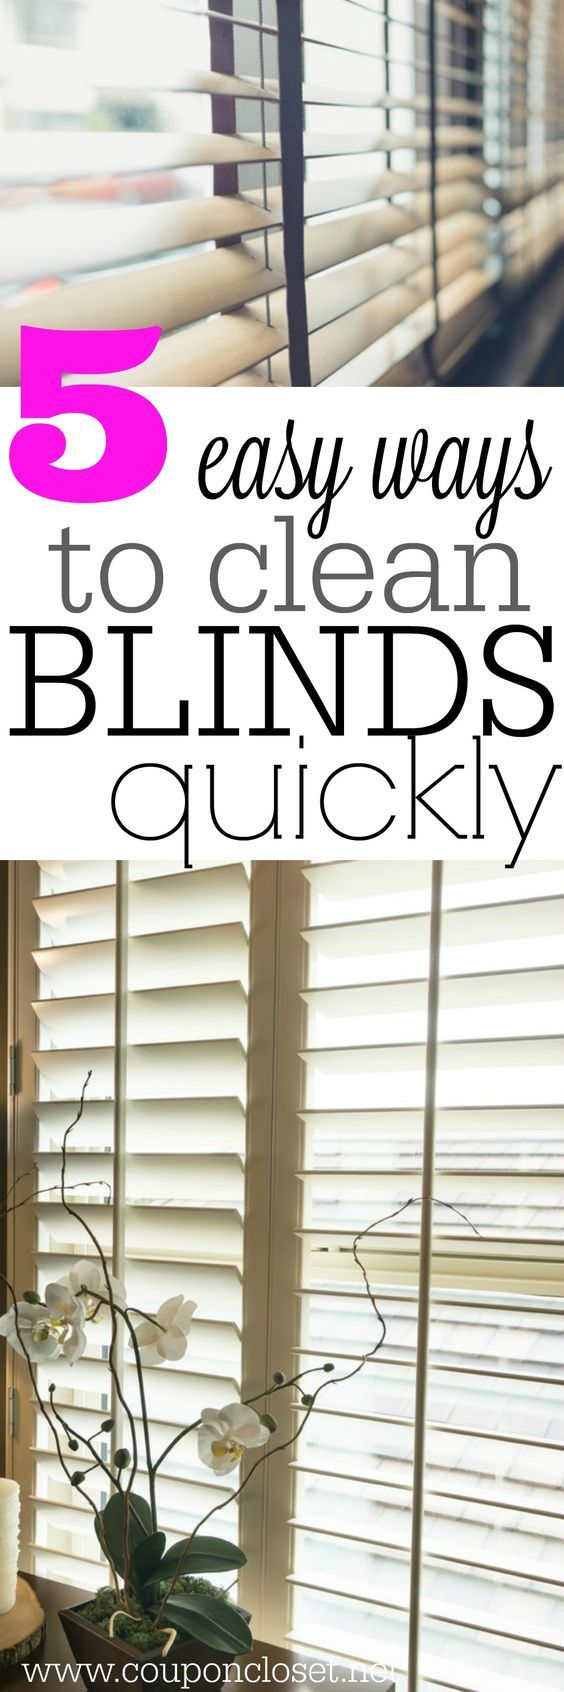 How to clean blinds easily - 5 easy ways to finally get them clean.